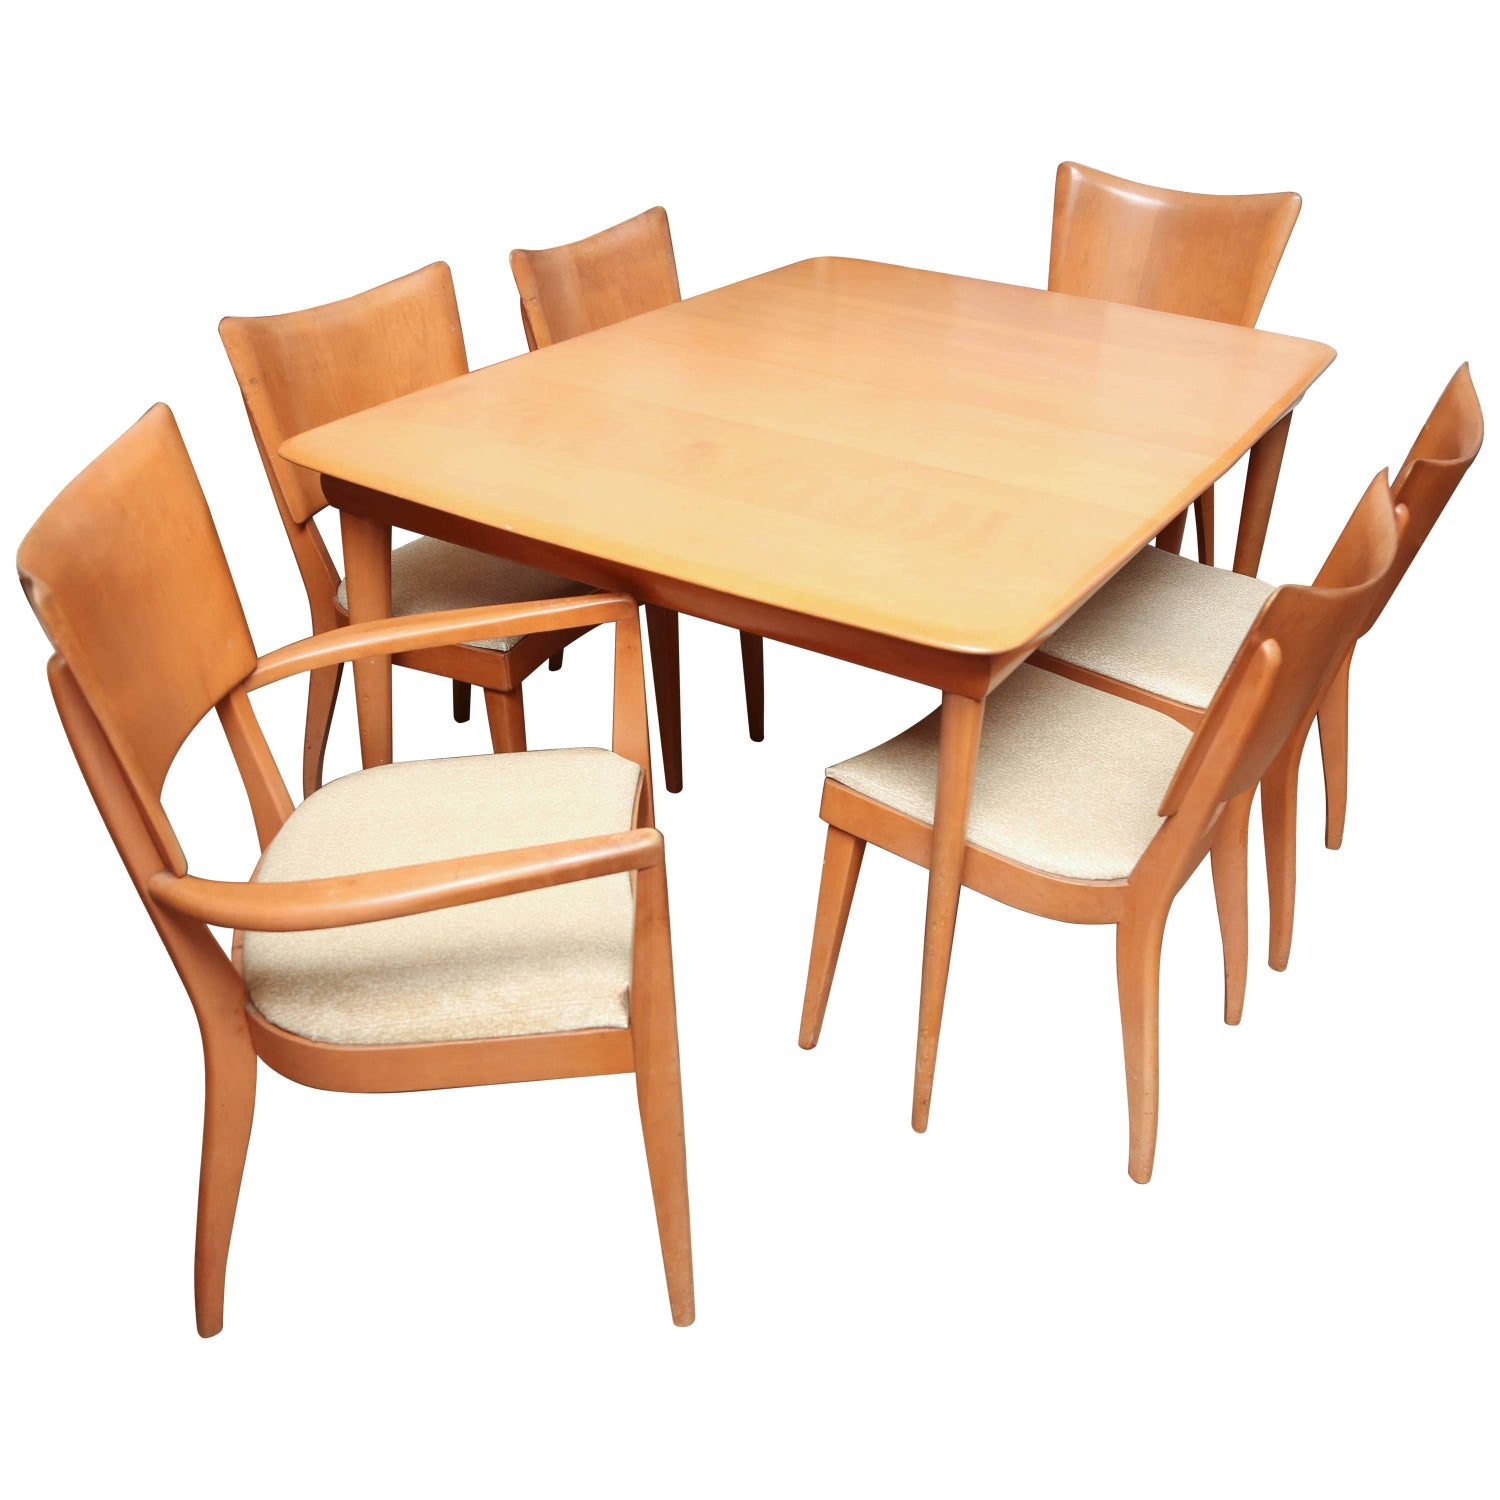 Heywood Wakefield Dining Room Set with Six Chairs 1960s USA at